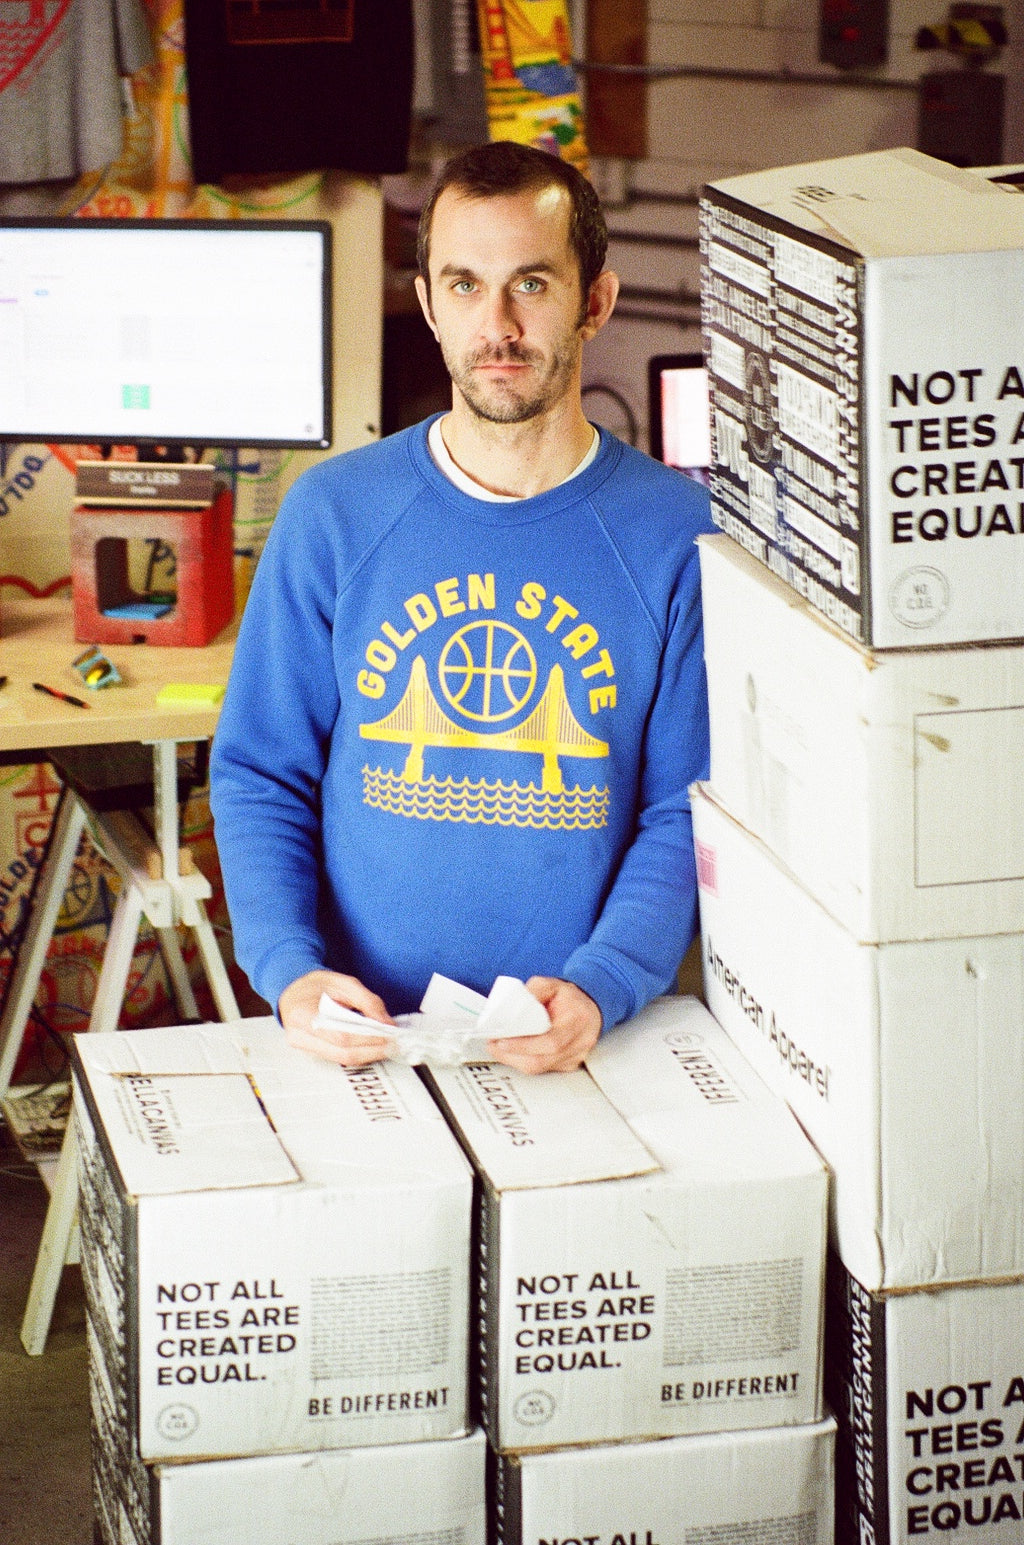 culk warehouse brian golden state sweatshirt